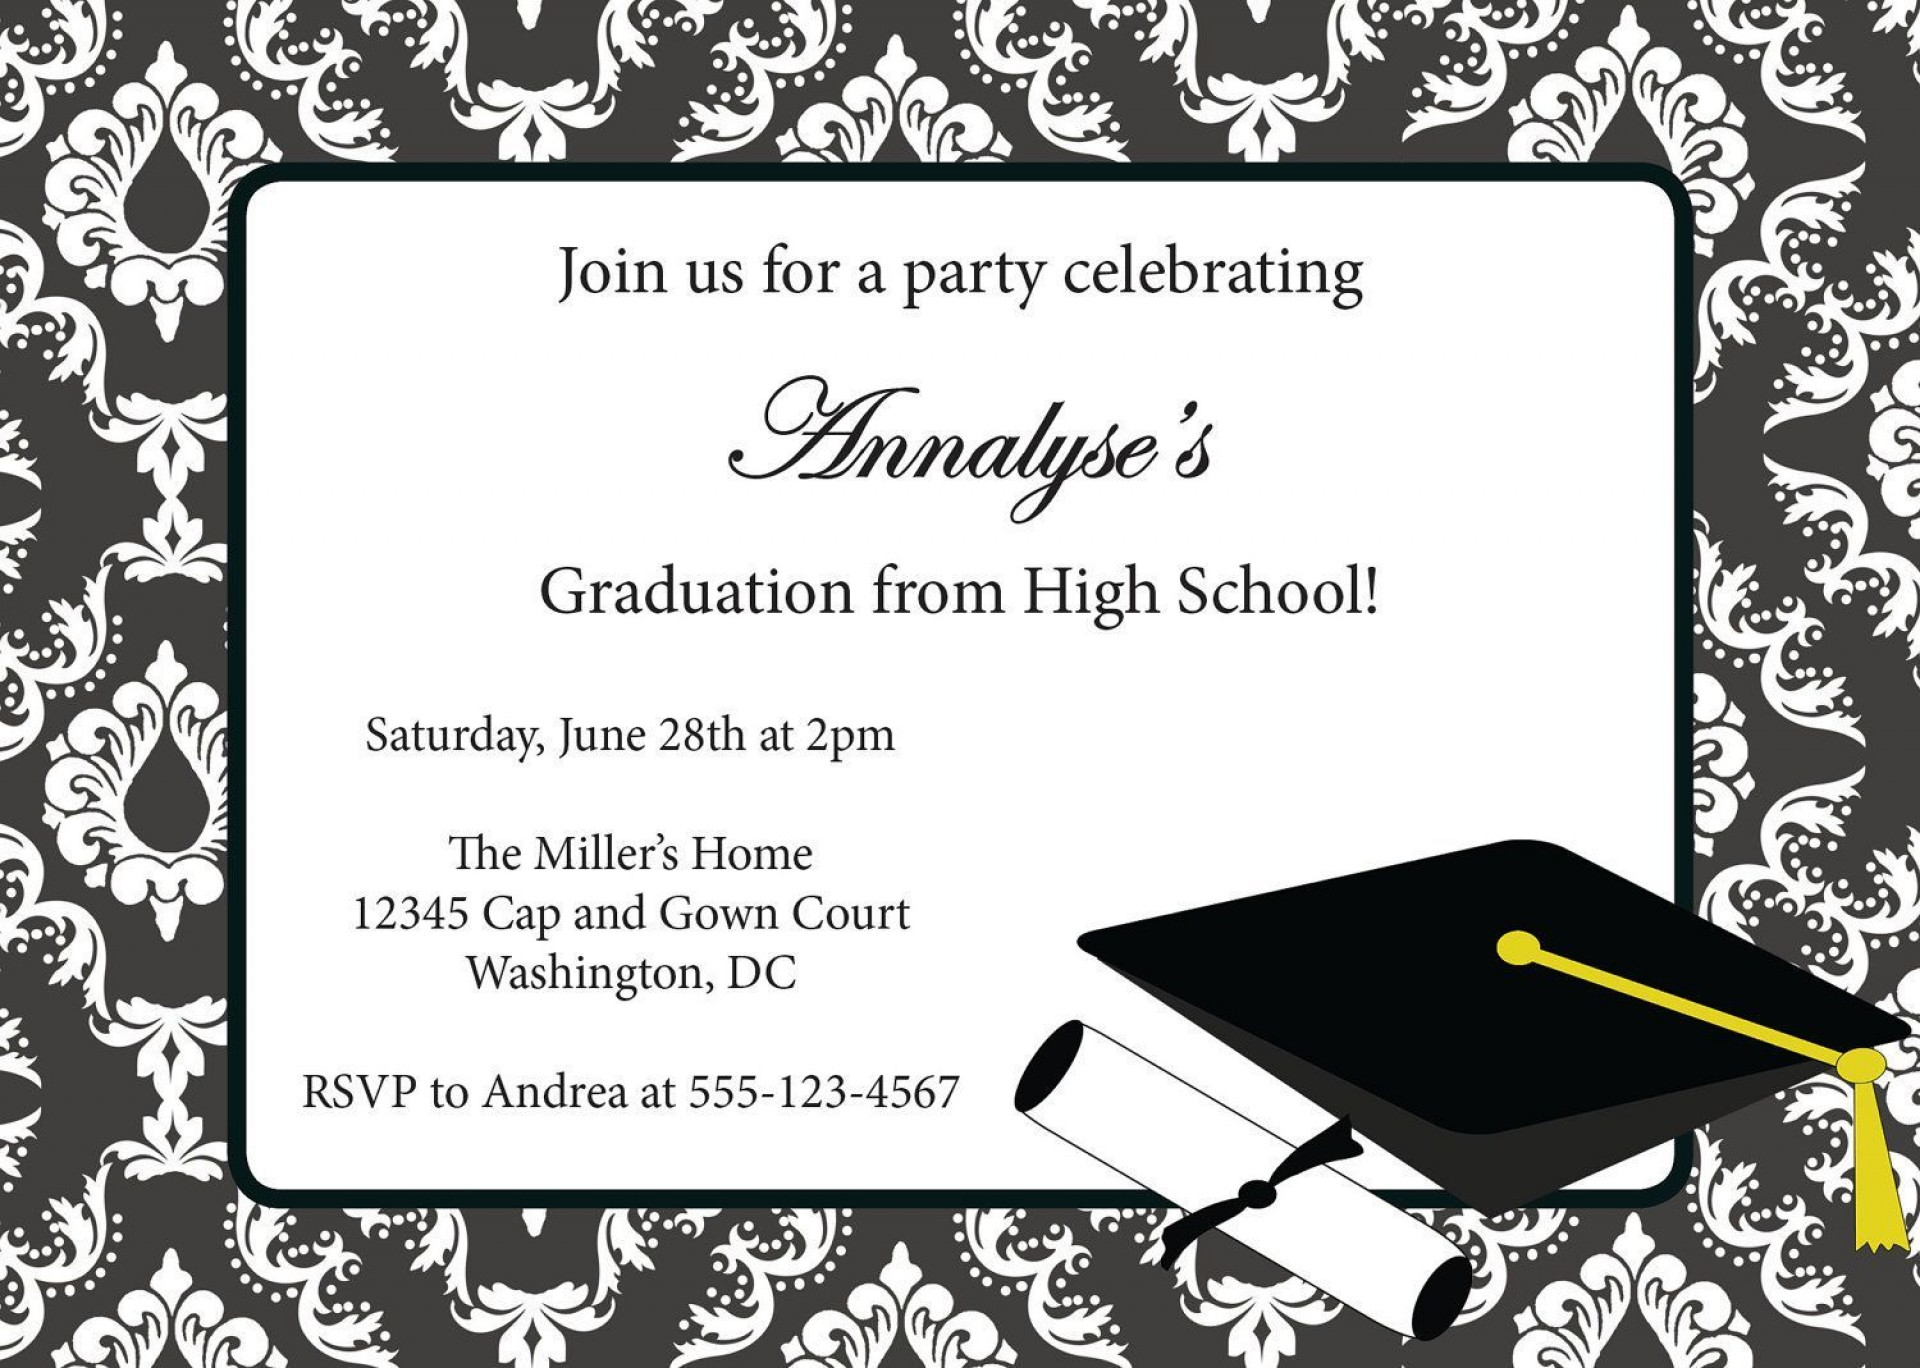 002 Amazing College Graduation Invitation Template Sample  Party Free For Word1920